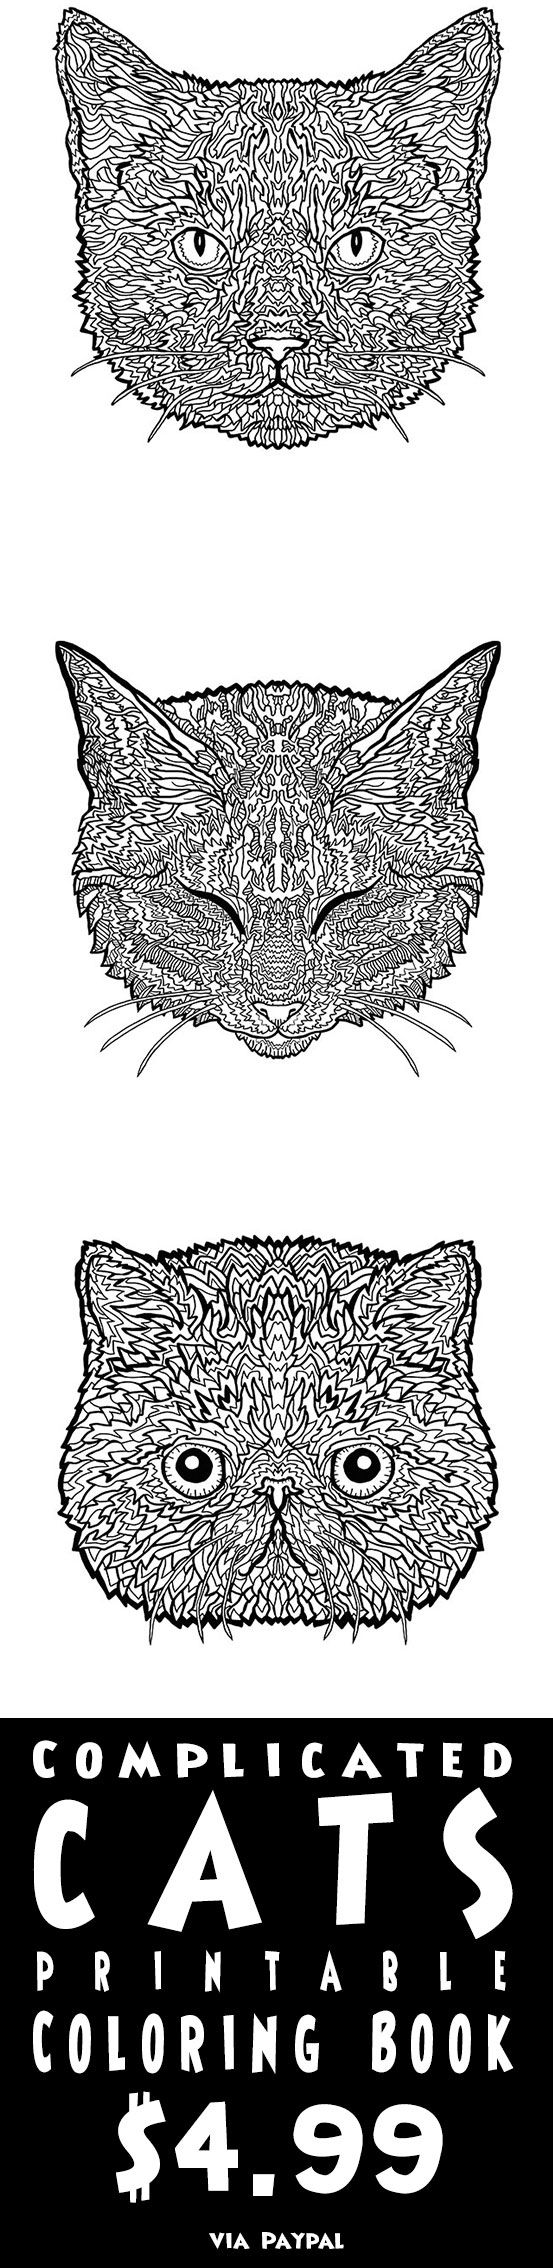 88 best complicated cats a fiddly feline coloring book images on